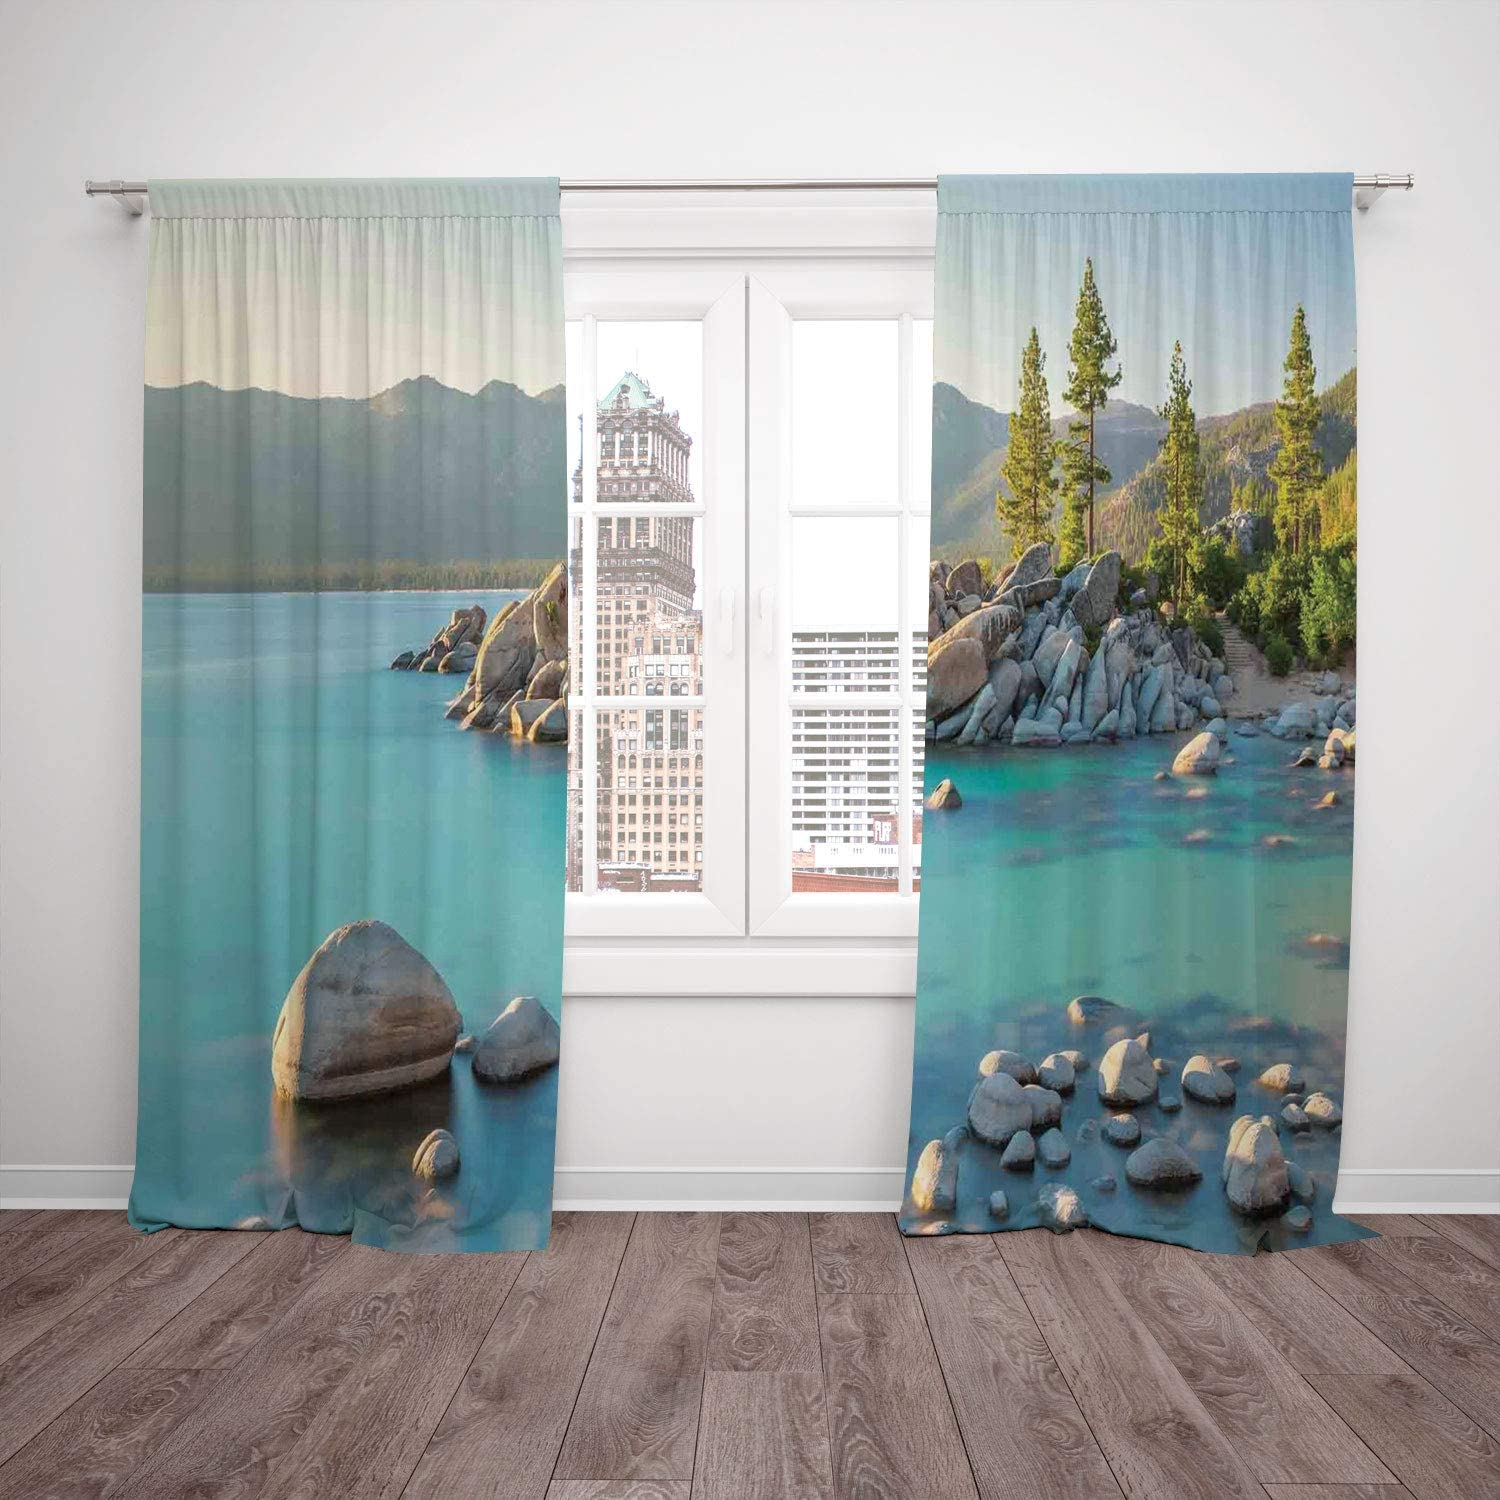 2 Panel Set Window Drapes Kitchen Curtains Lake Pastoral Spring Time Scenery In Provincial Countryside Lake Beach Shallow Water Theme Blue Grey For Bedroom Living Room Dorm Kitchen Cafe Amazon Co Uk Kitchen Home